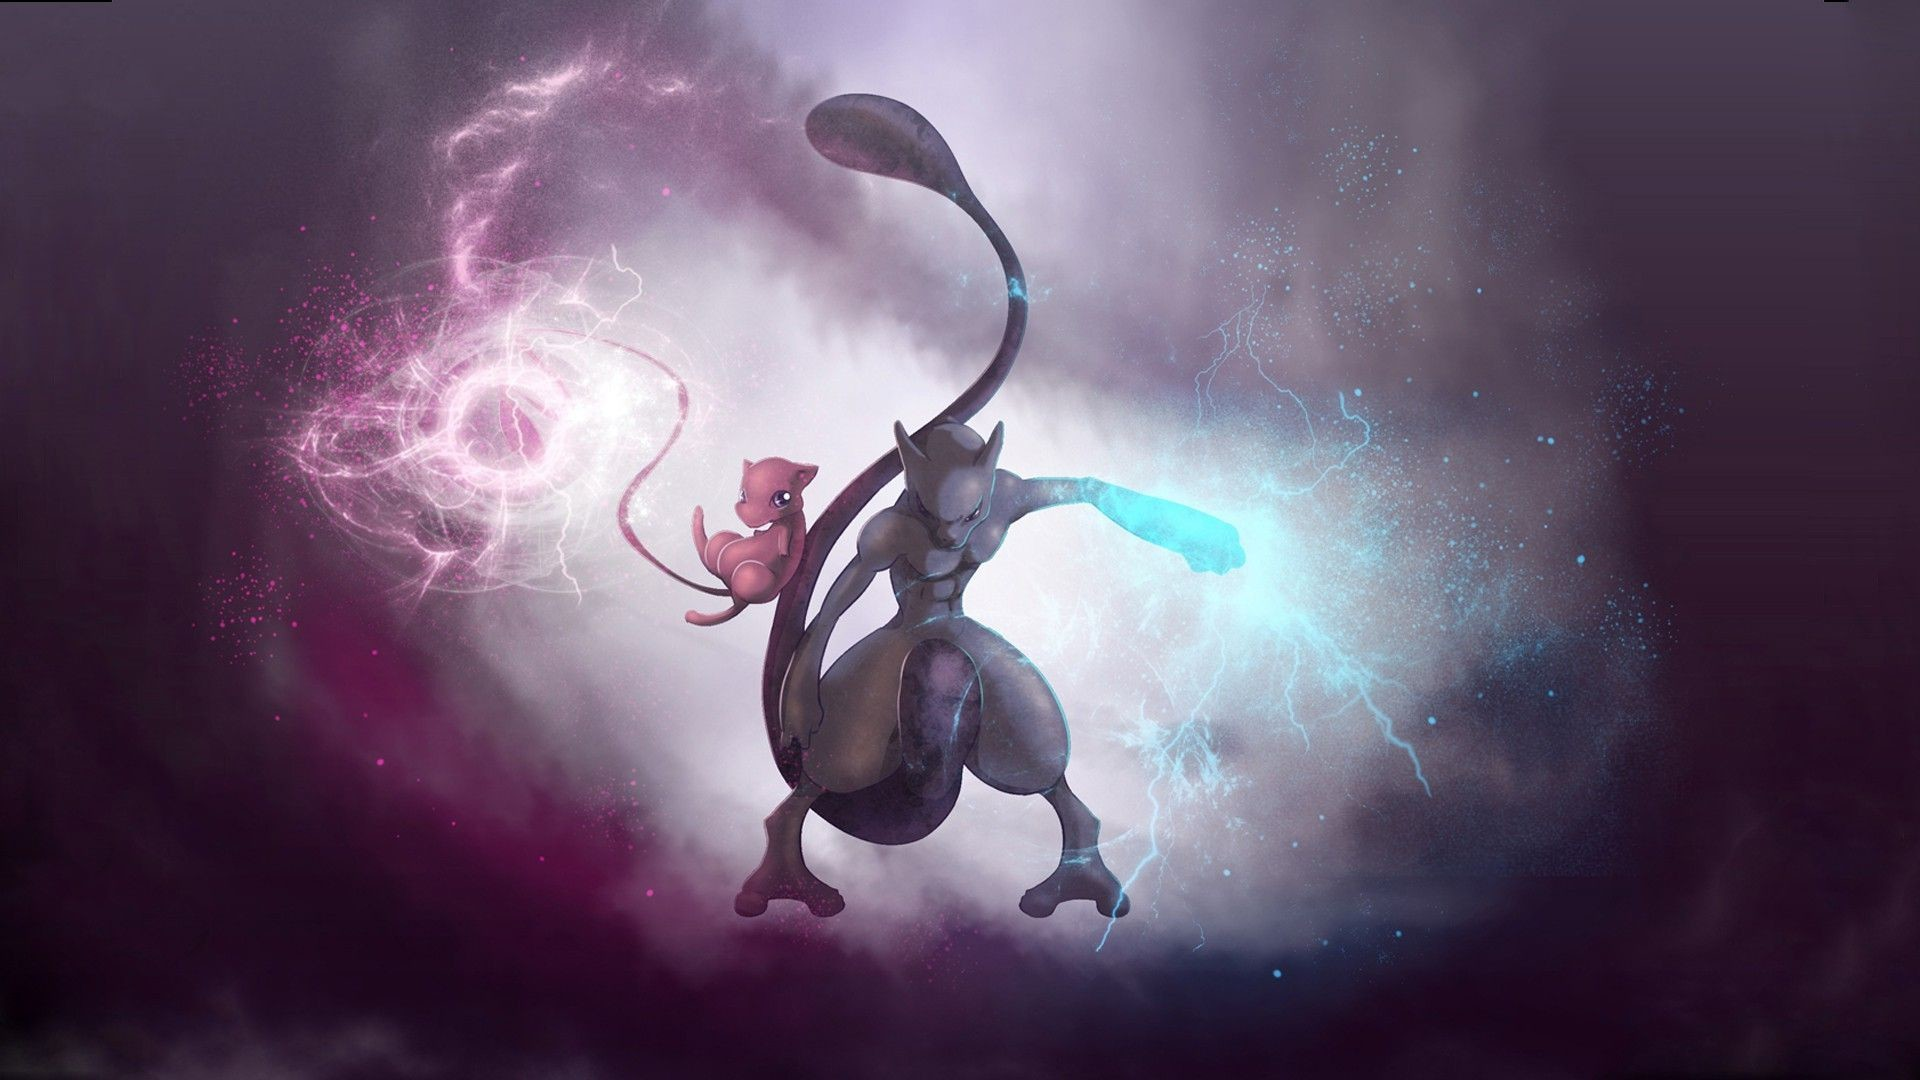 1920x1080 Mewtwo Wallpapers (62 Wallpapers)